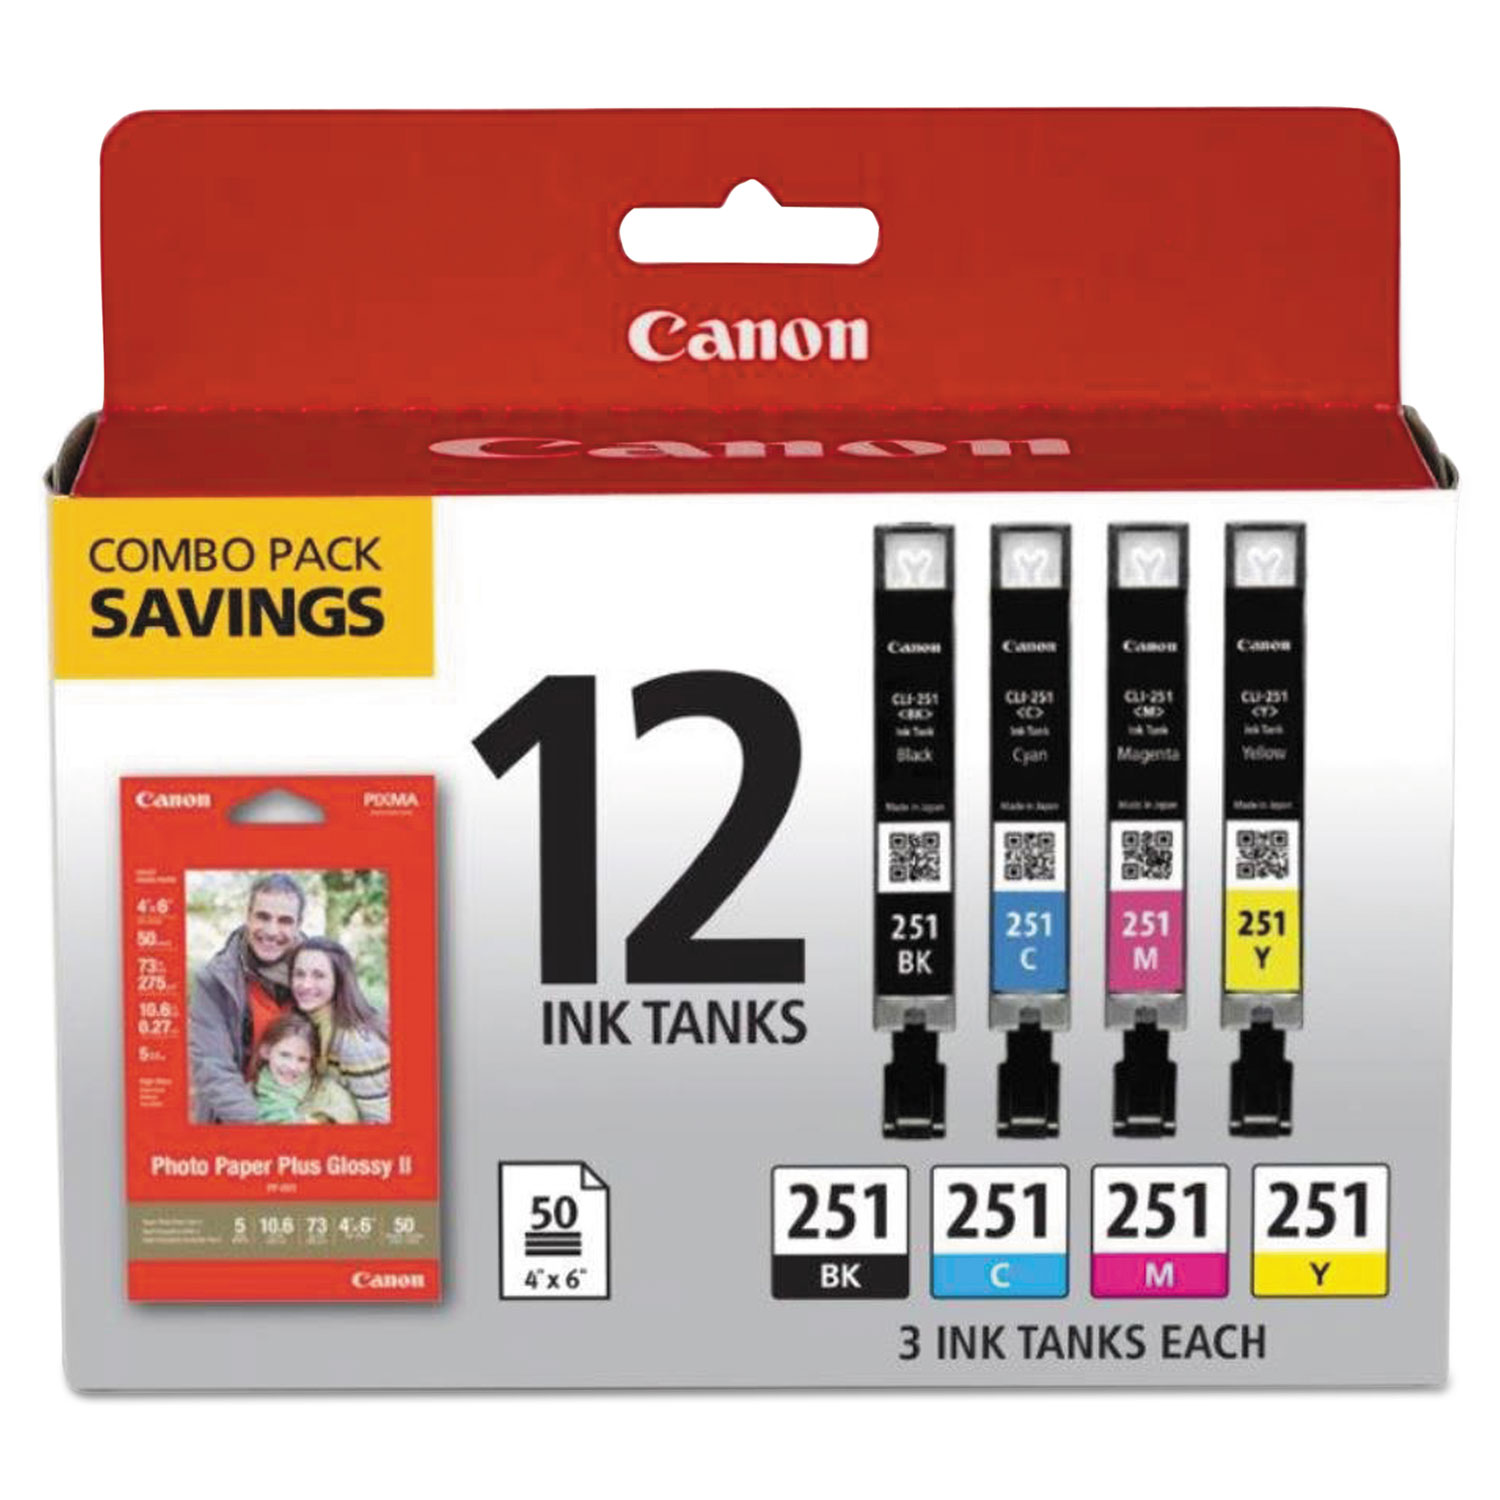 6513B010 (CLI-251) Ink & Paper Combo Pack, Black/Cyan/Magenta/Yellow